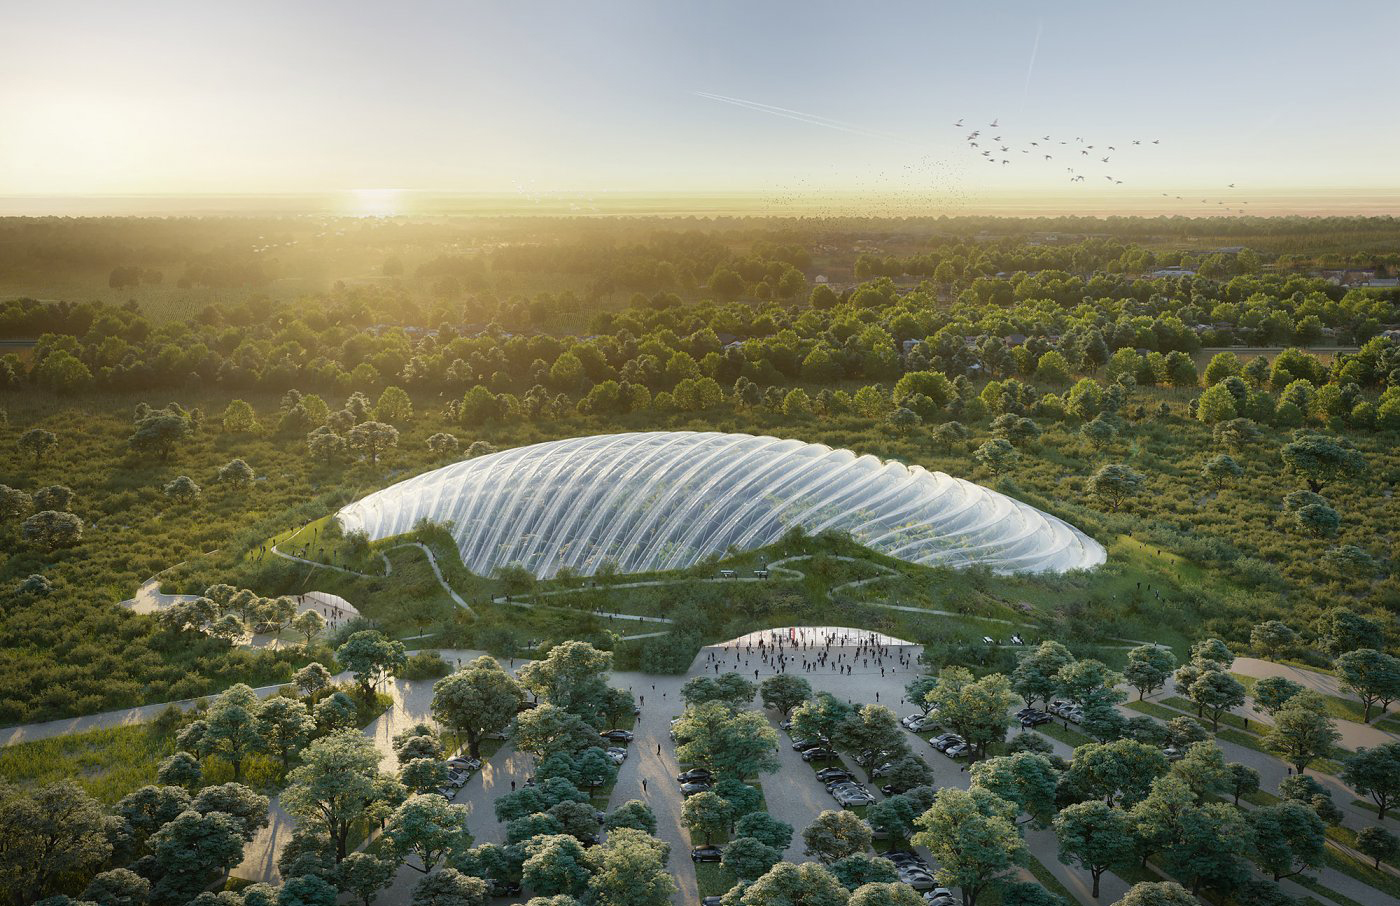 World's largest single-domed greenhouse